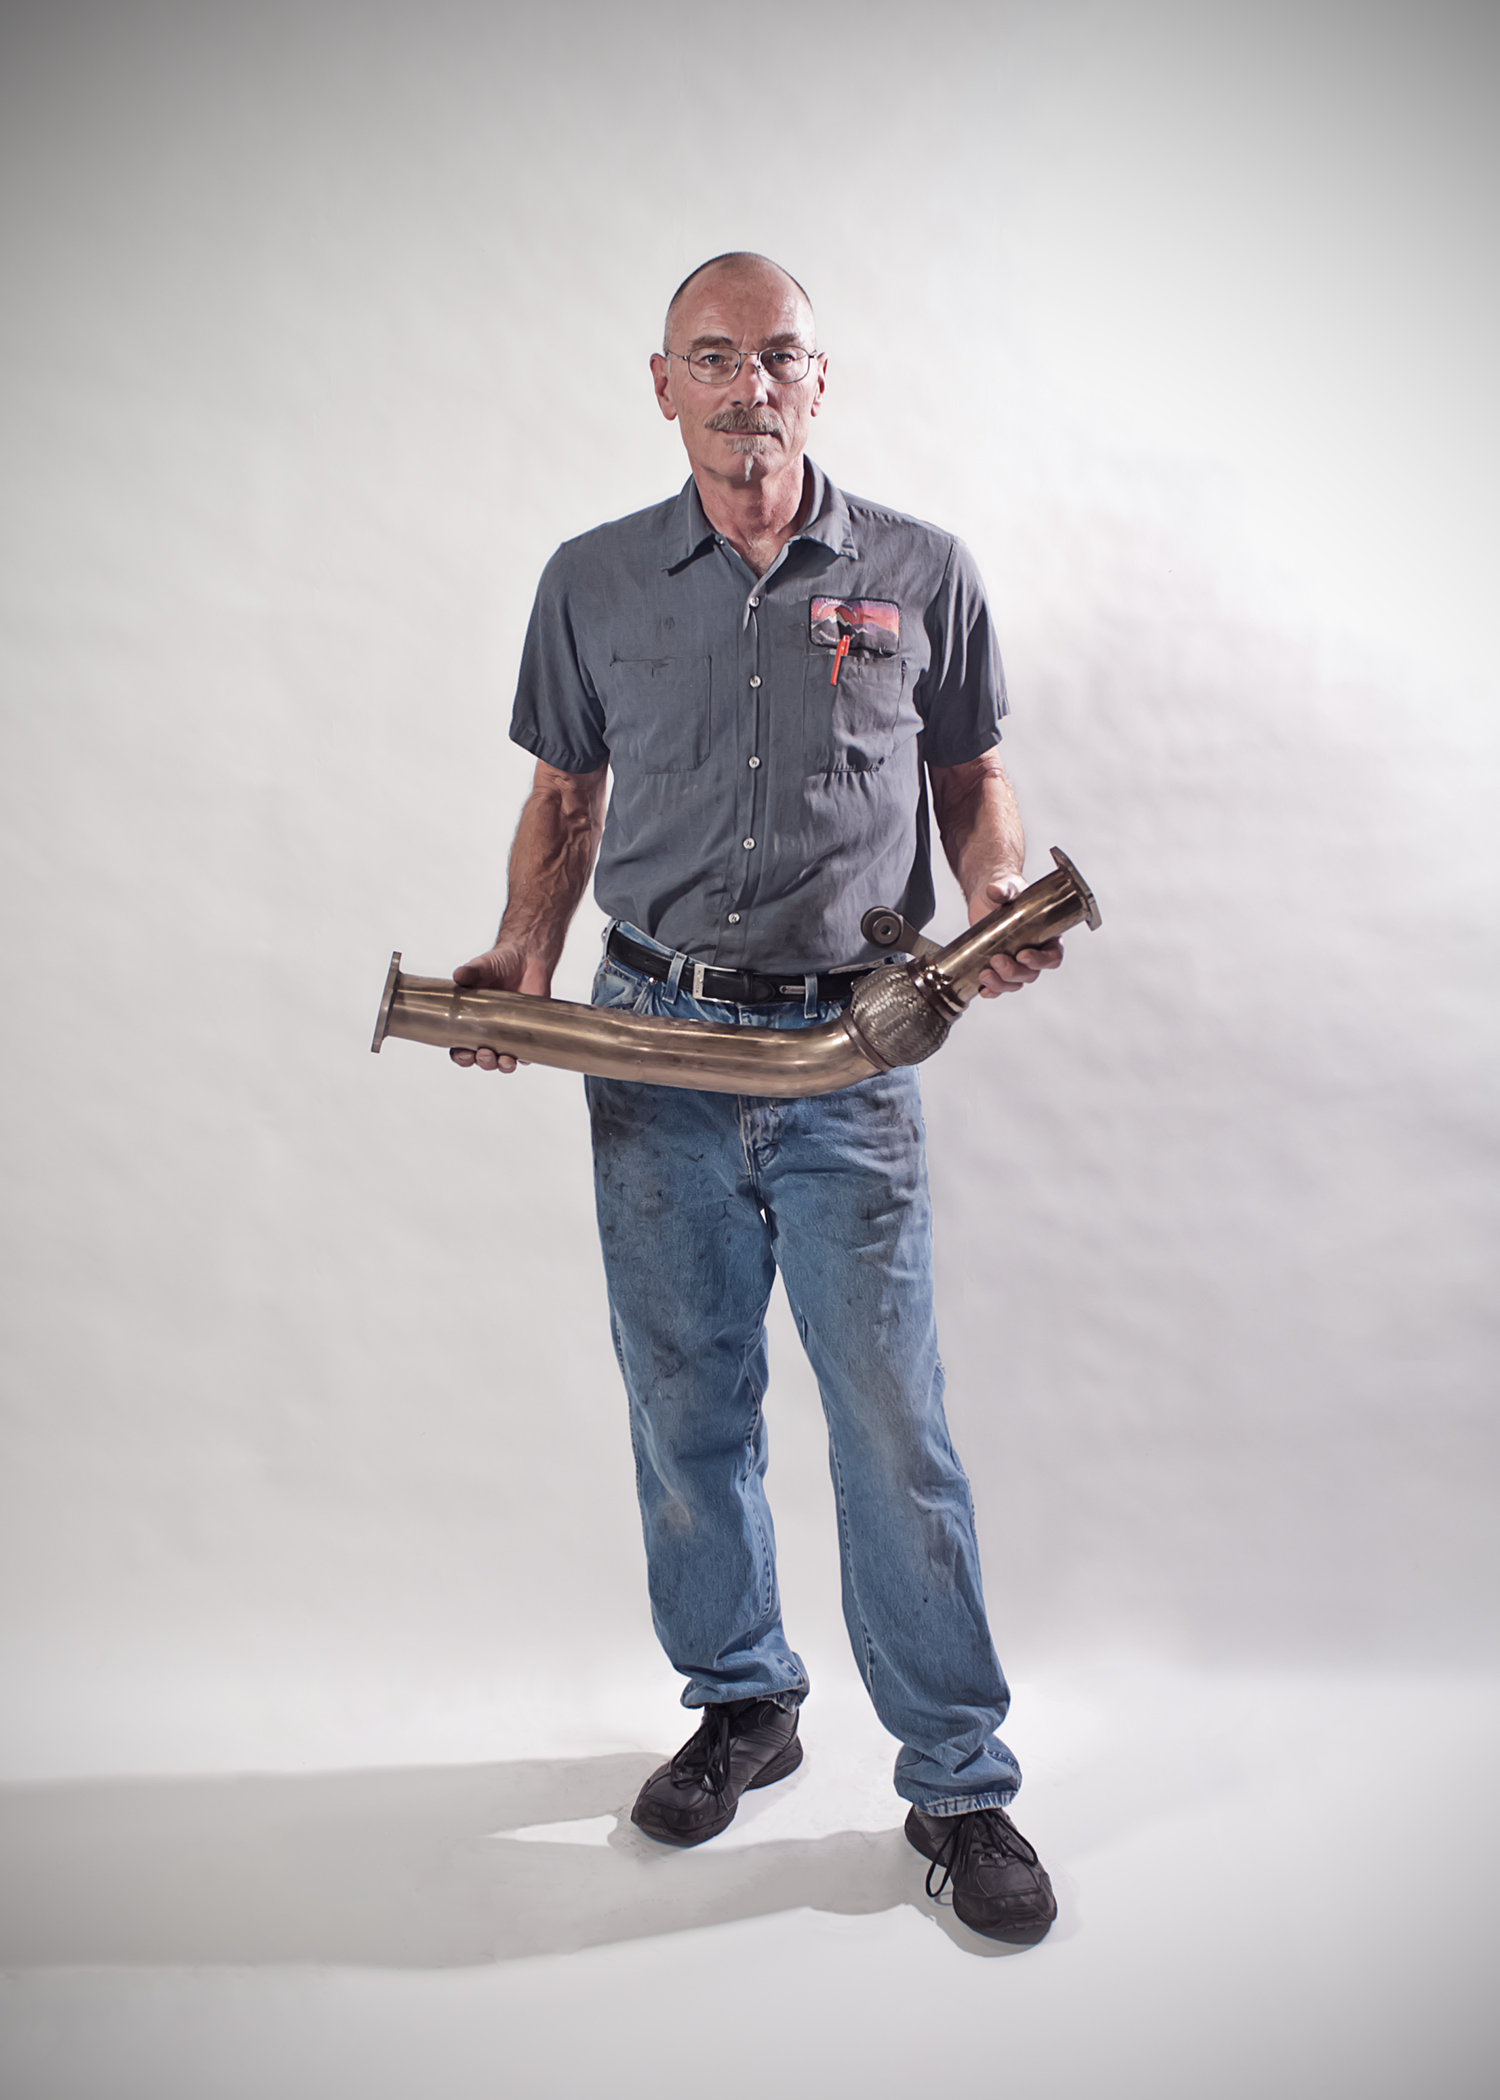 Tod  Master Auto Mechanic for the What I Wear To Work portrait series.